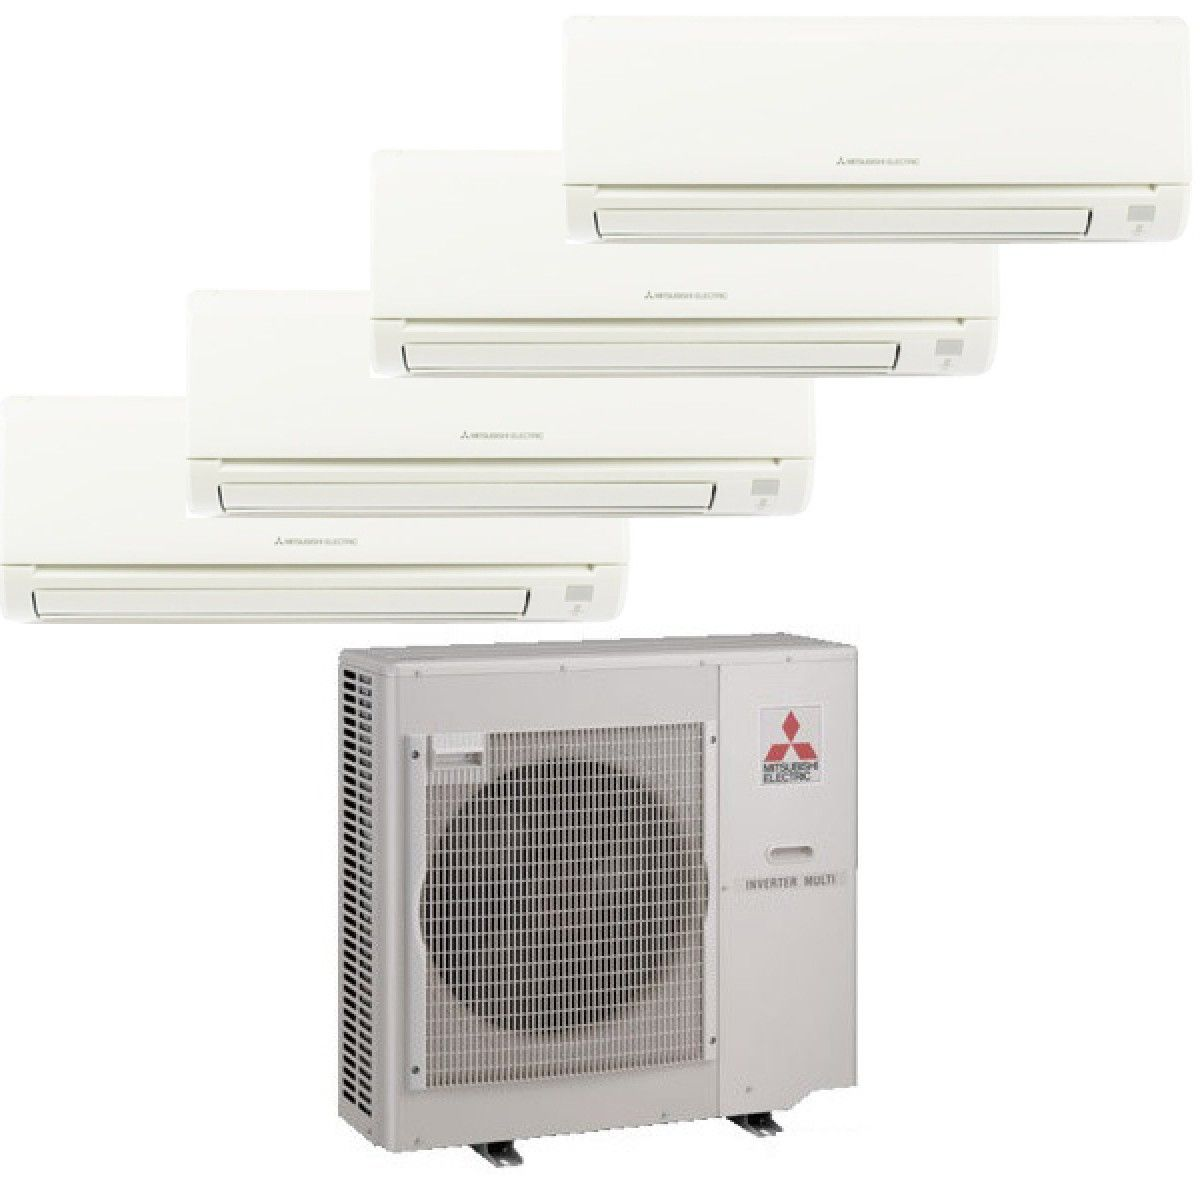 Home Air Conditioning Zoning